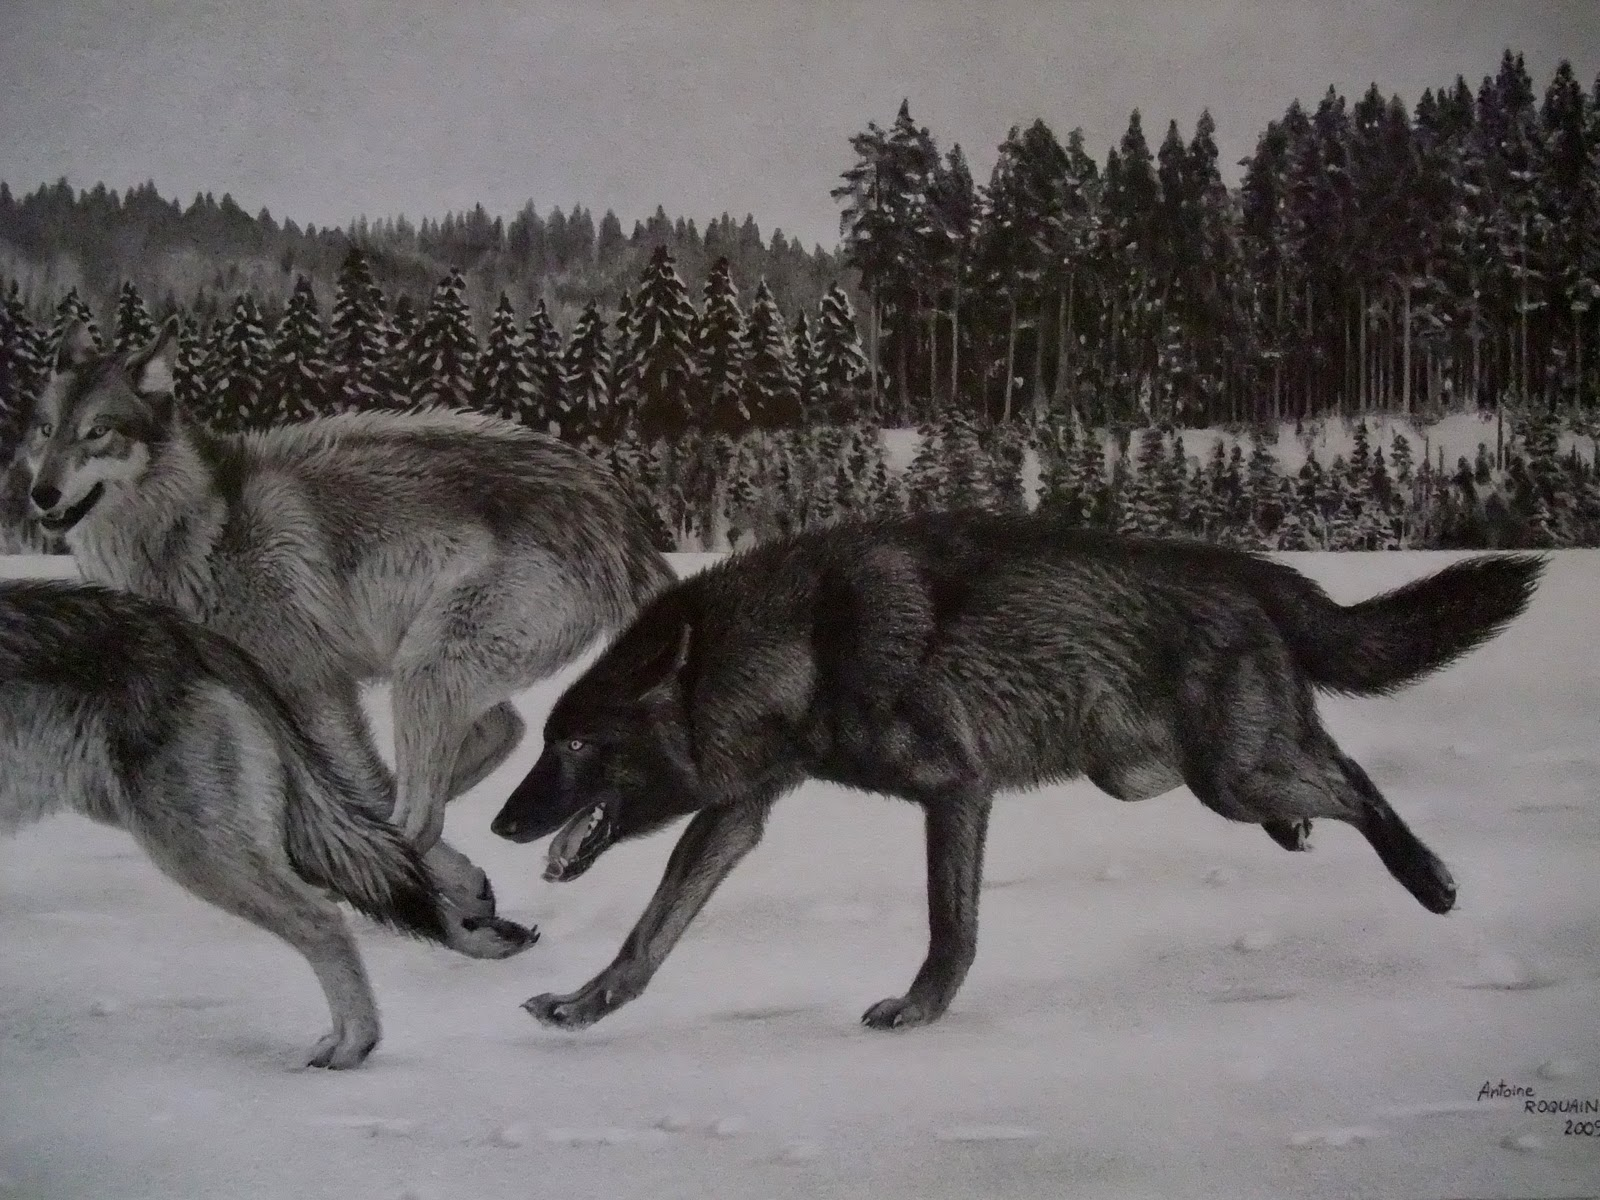 Antoine Roquain Dessin Animalier Wildlife Pencil Art Dessin De Loups